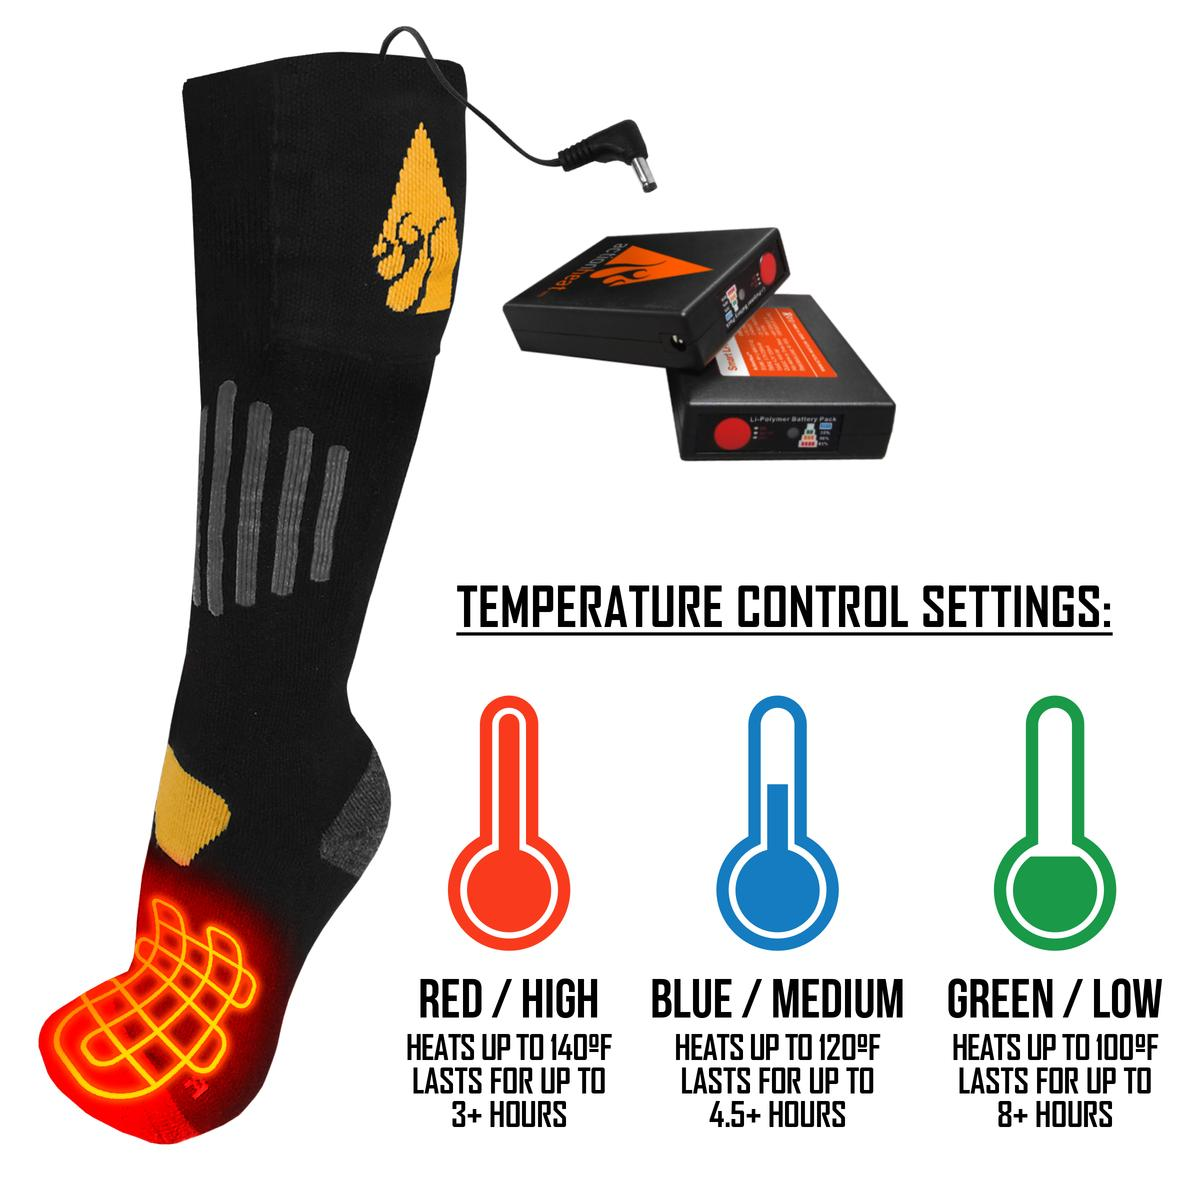 ActionHeat 3.7V Rechargeable Battery Heated Socks - Cotton - Size